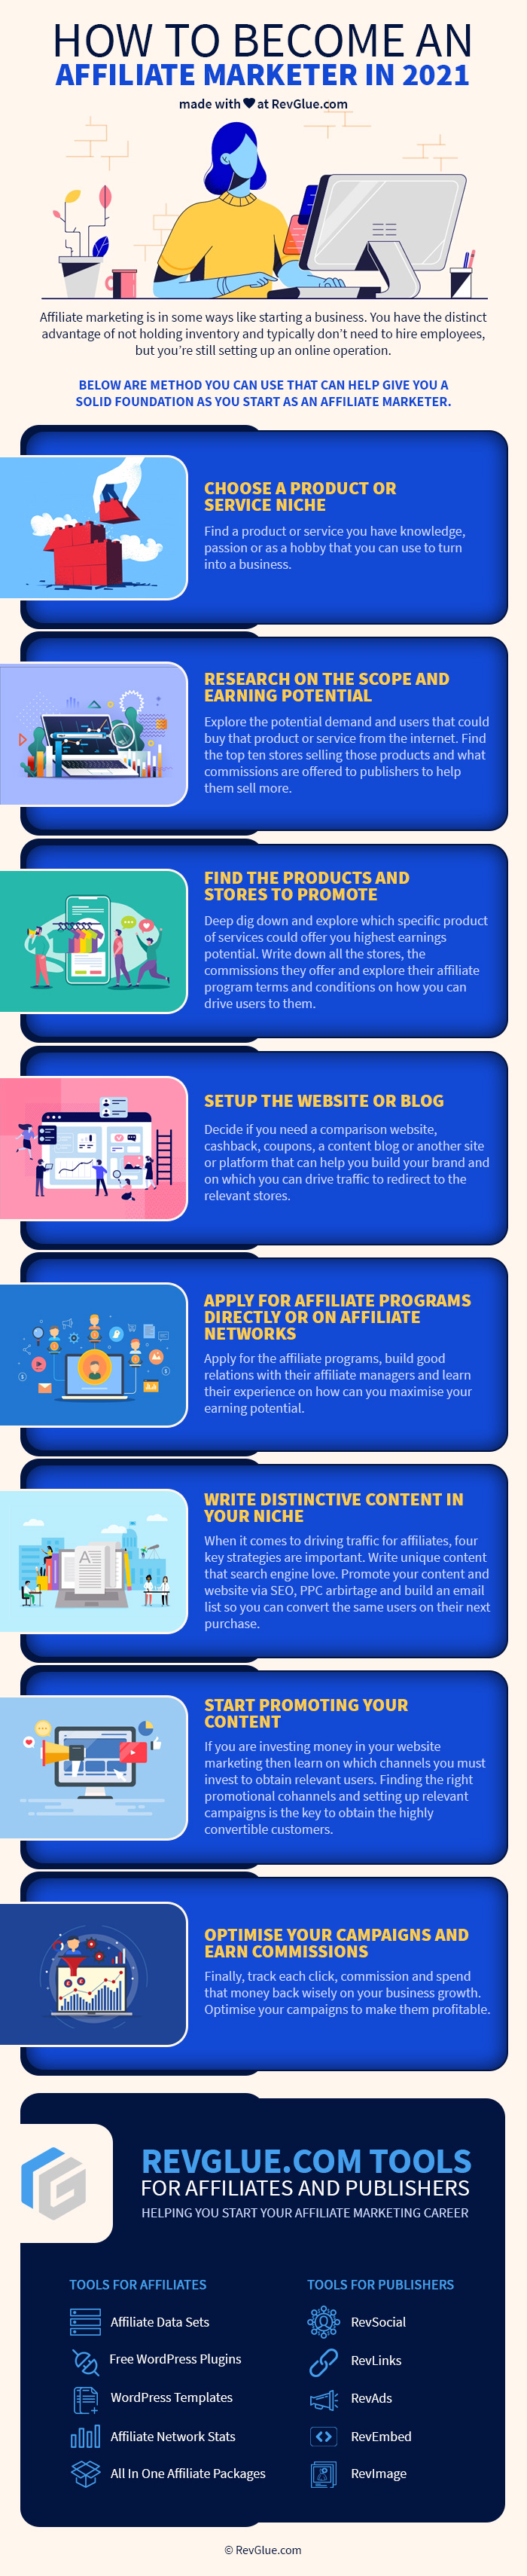 How to become an affiliate marketer in 2021 infographic